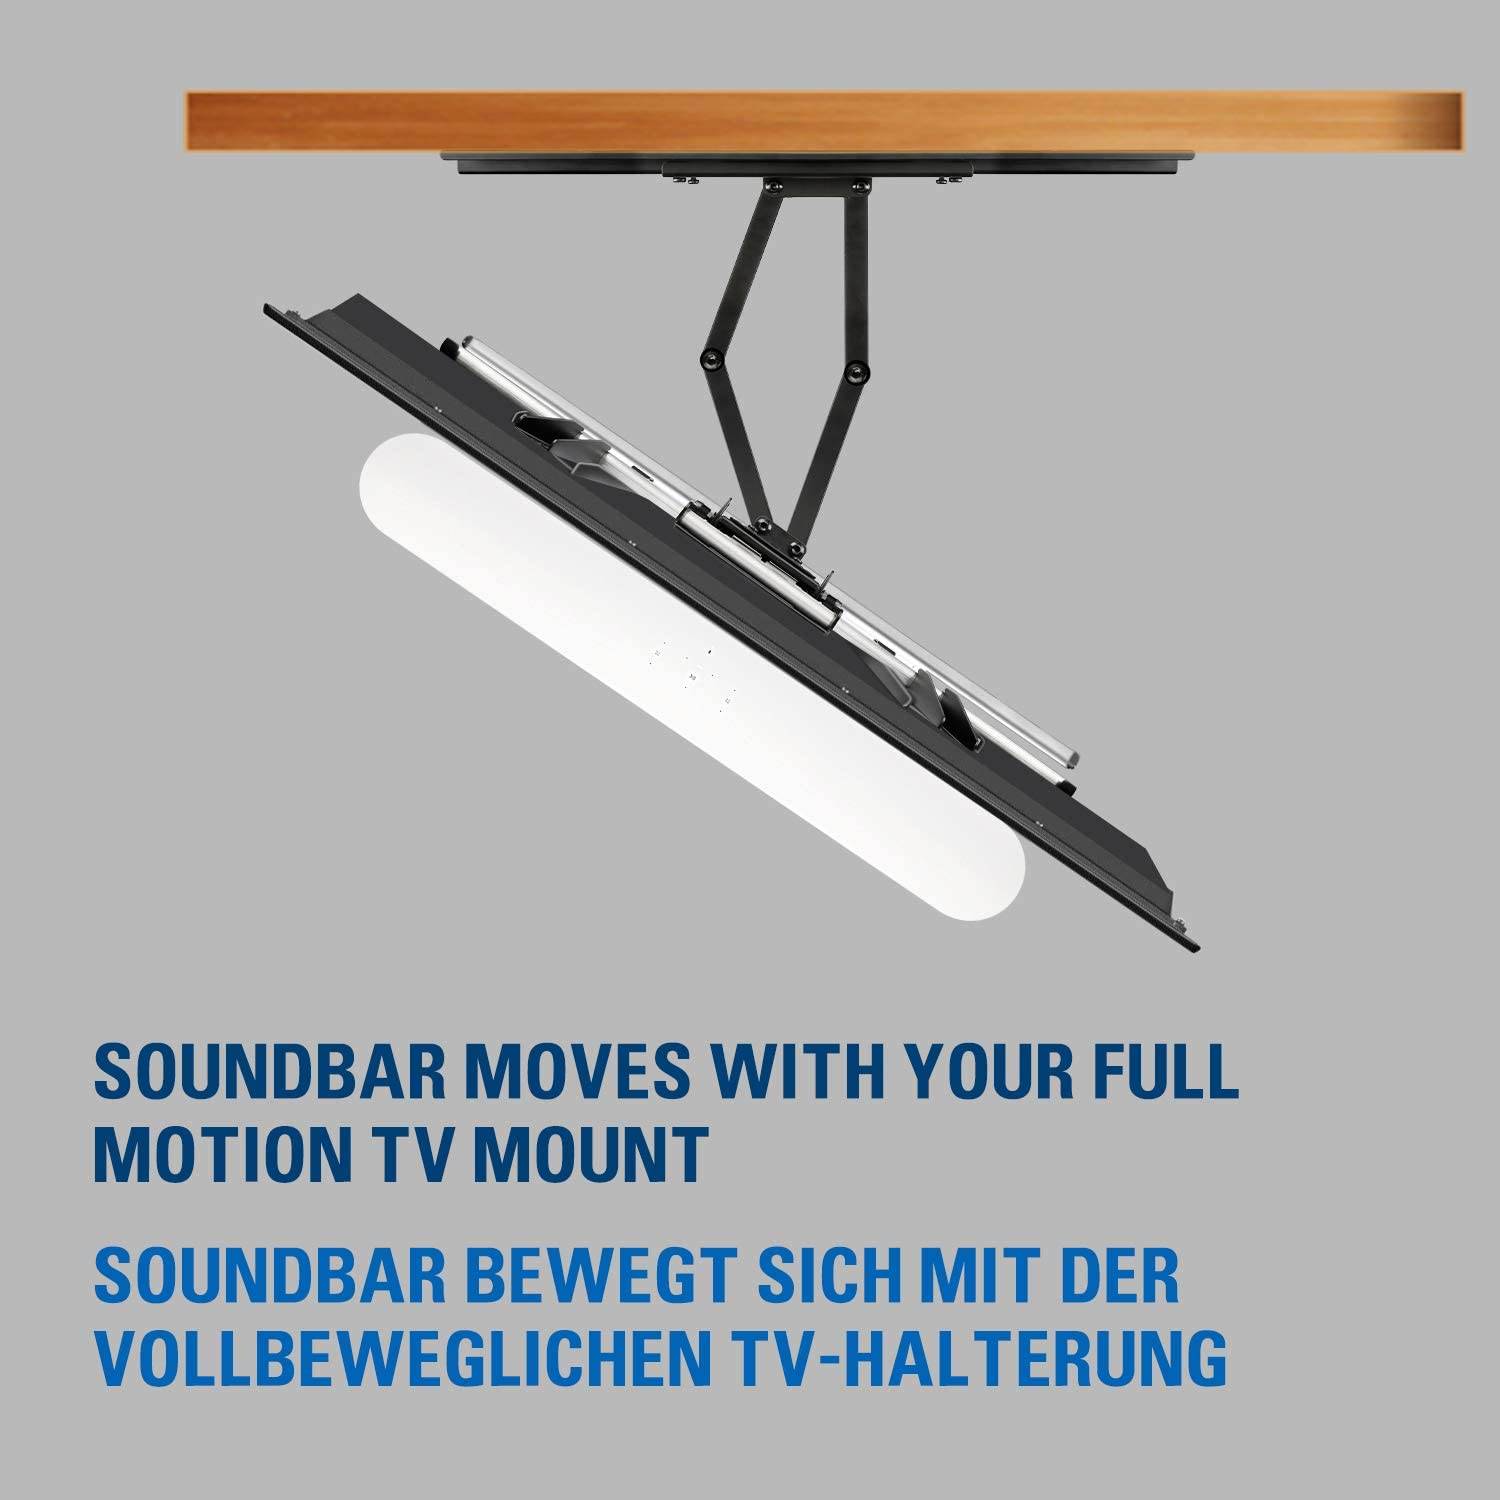 Mounting Dream Soundbar Bracket for SONOS Beam for TVs VESA up to 600 x 400 mm with Sliding Block Mount to TV Mount (White), MD5426-W-03 White for Sonos Beam